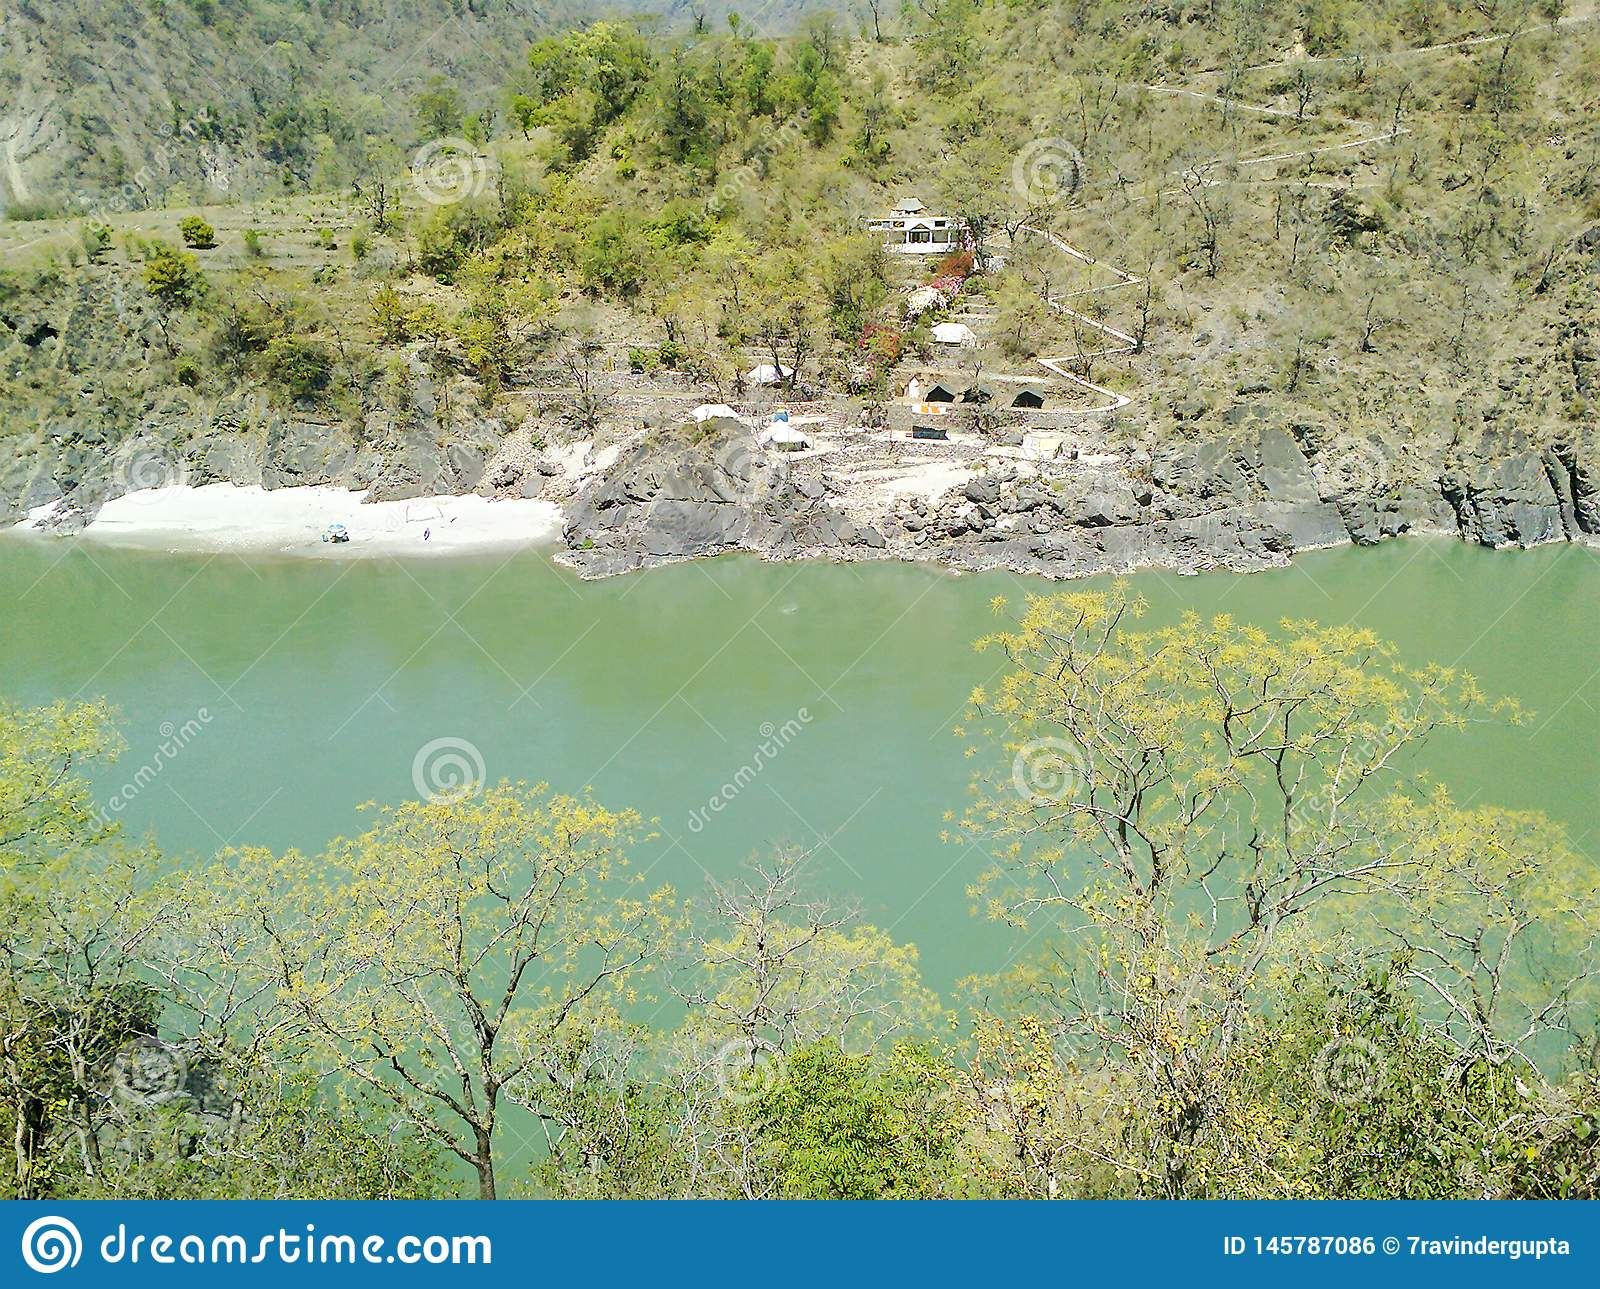 Arial View of River and Mountain